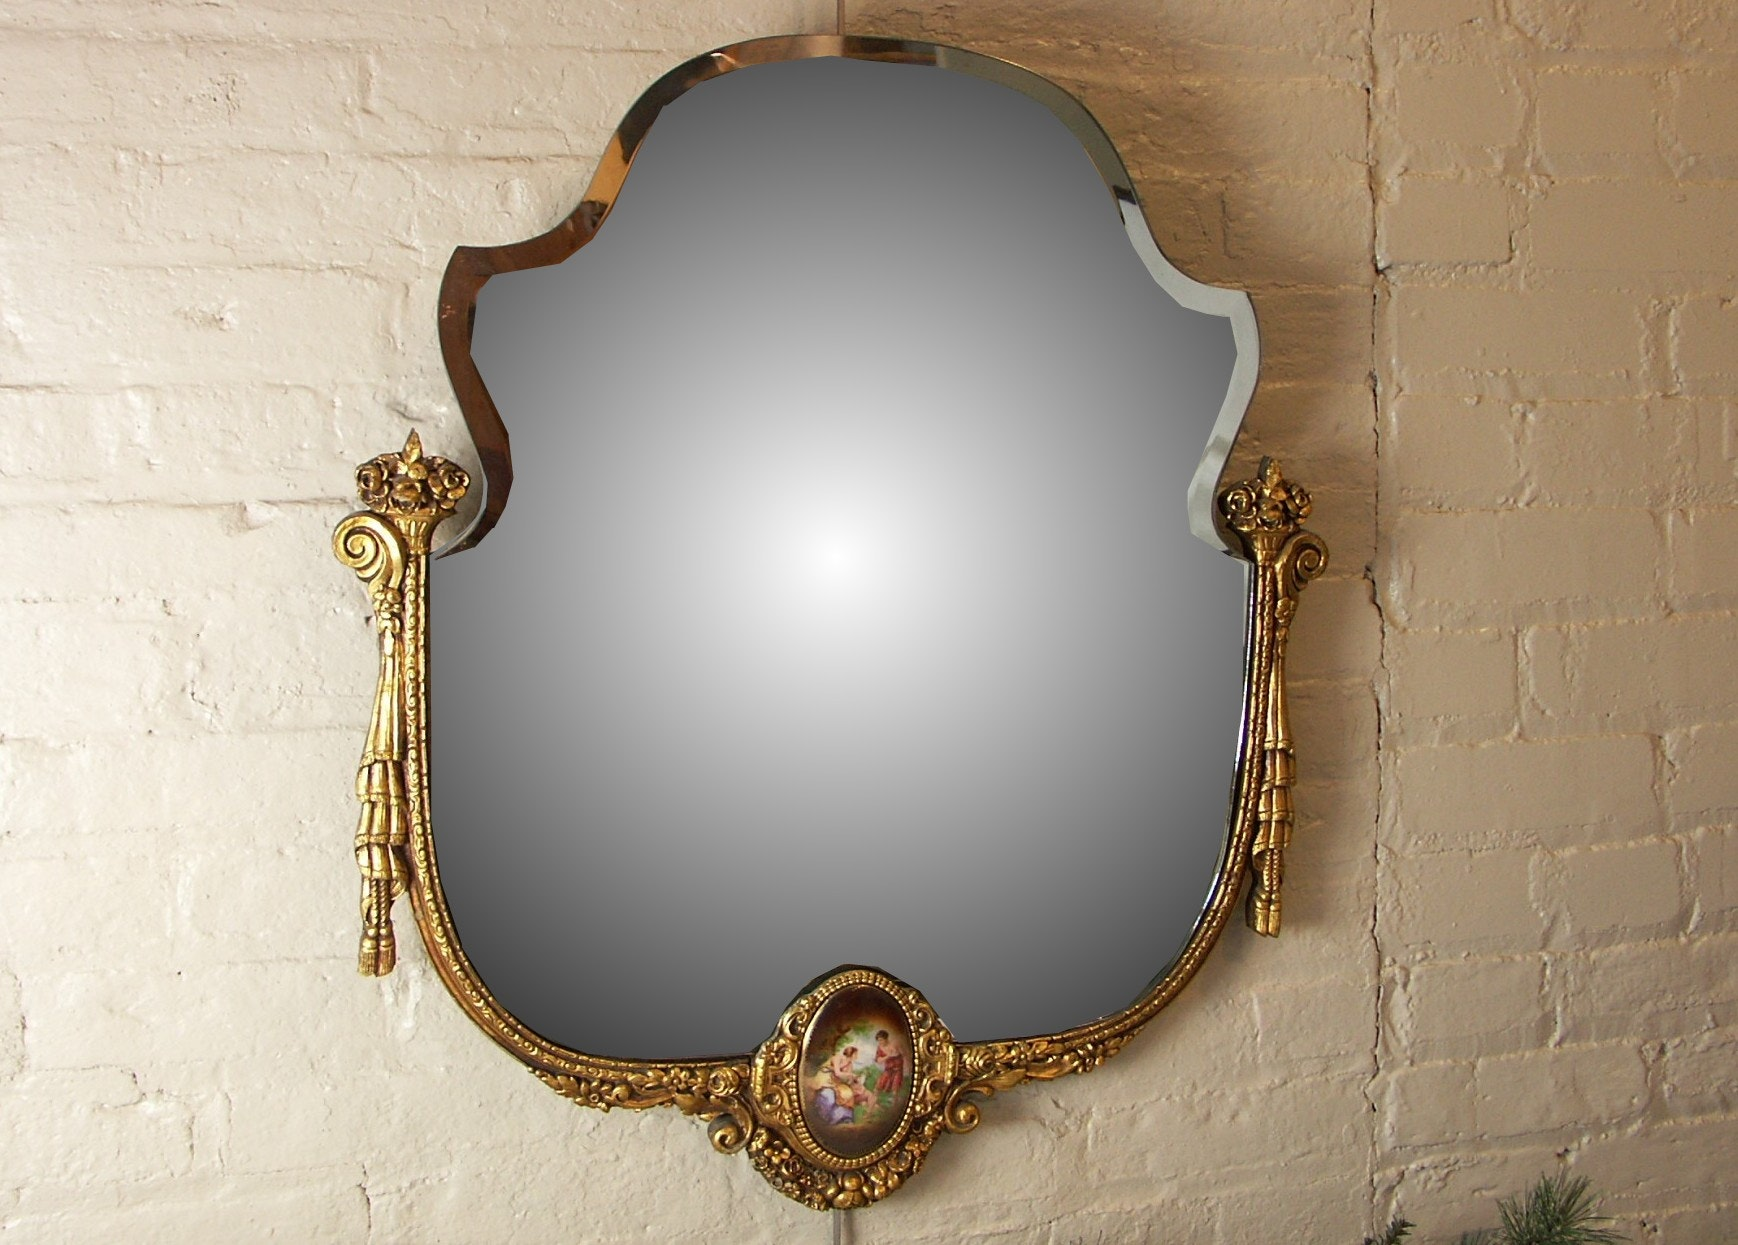 Ornate Provincial Style Mirror with Porcelain Pediment